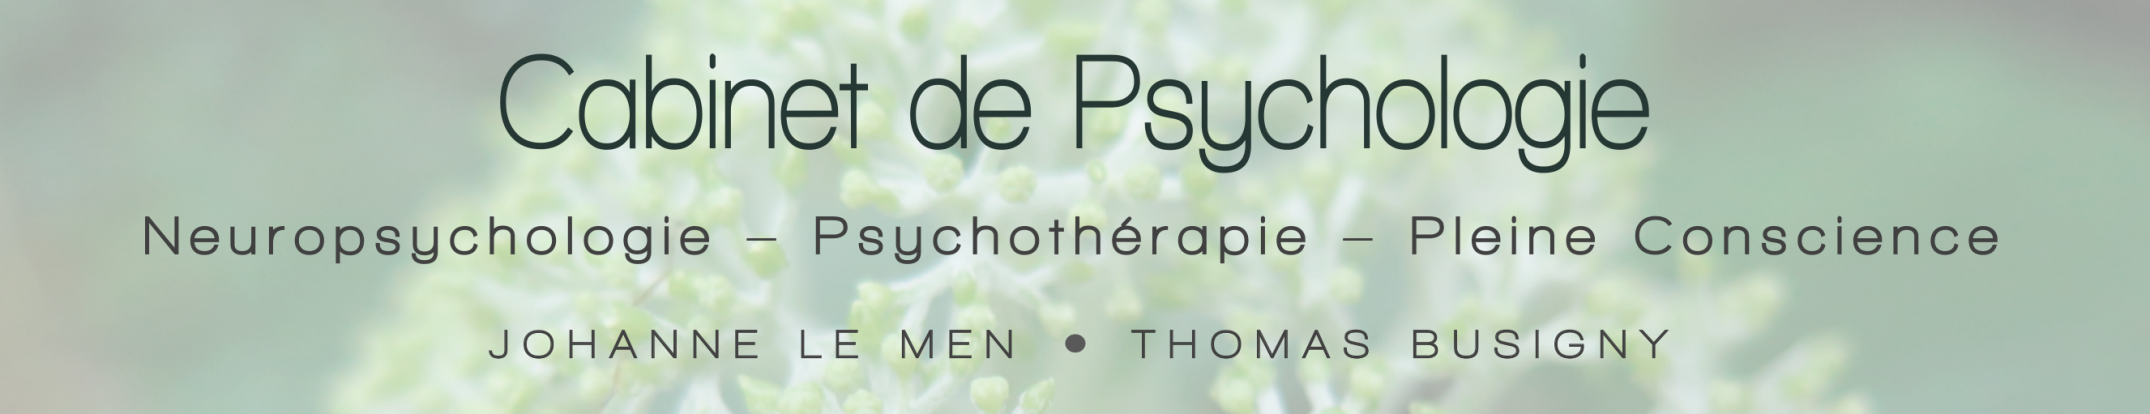 Cabinet Neuropsychologie Toulouse